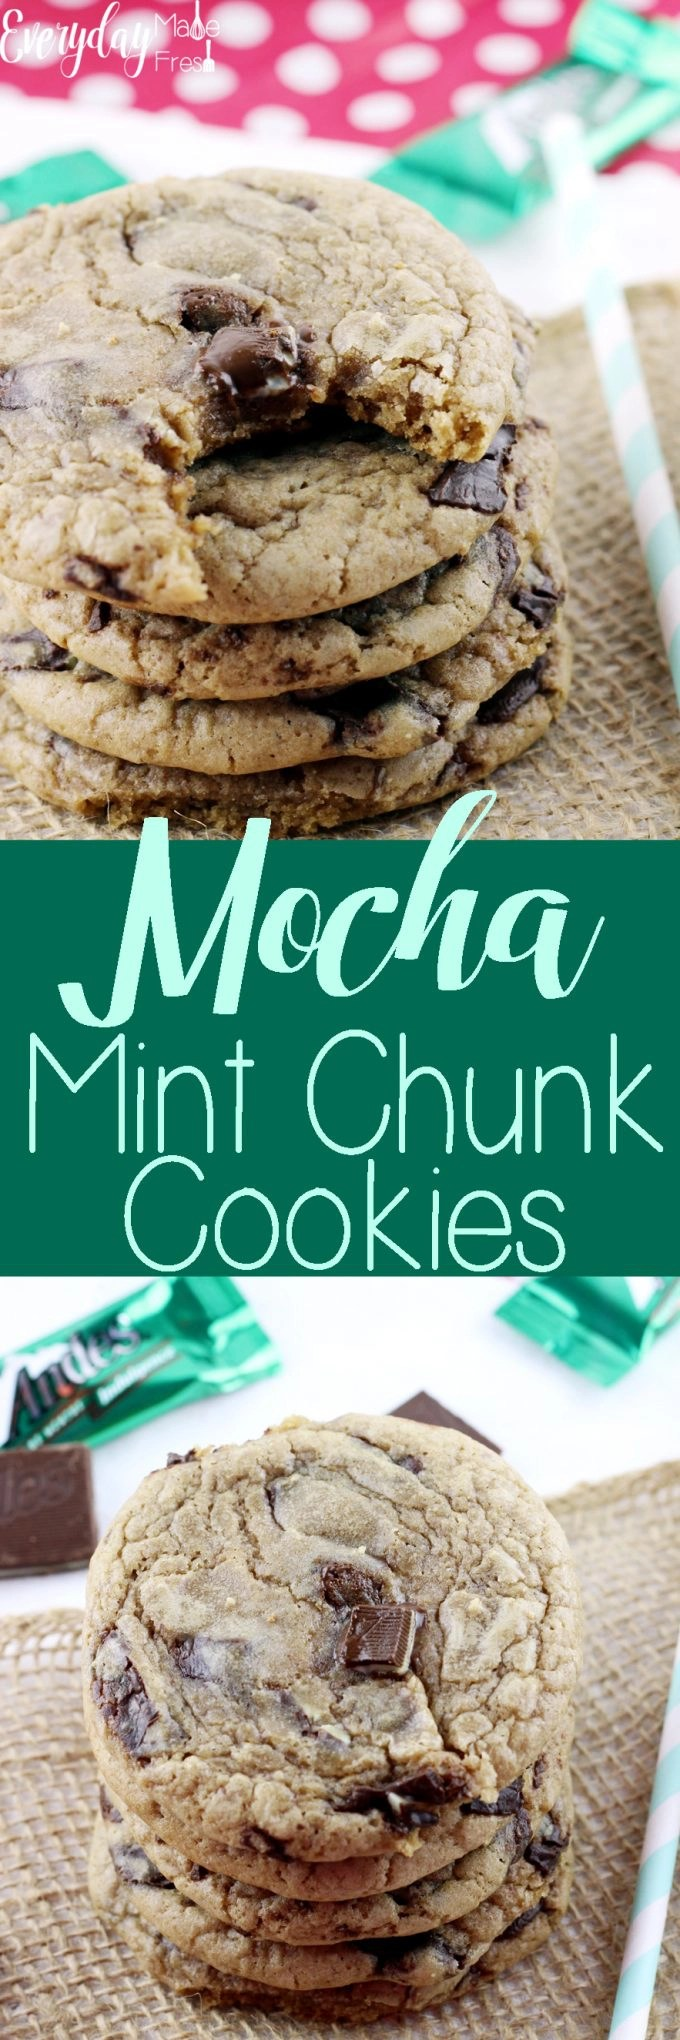 Hints of coffee, chunks of chocolate mint candies, and a chewy texture that will have you coming back for more. These Mocha Mint Chocolate Chunk Cookies are one of my personal favorites!   EverydayMadeFresh.com